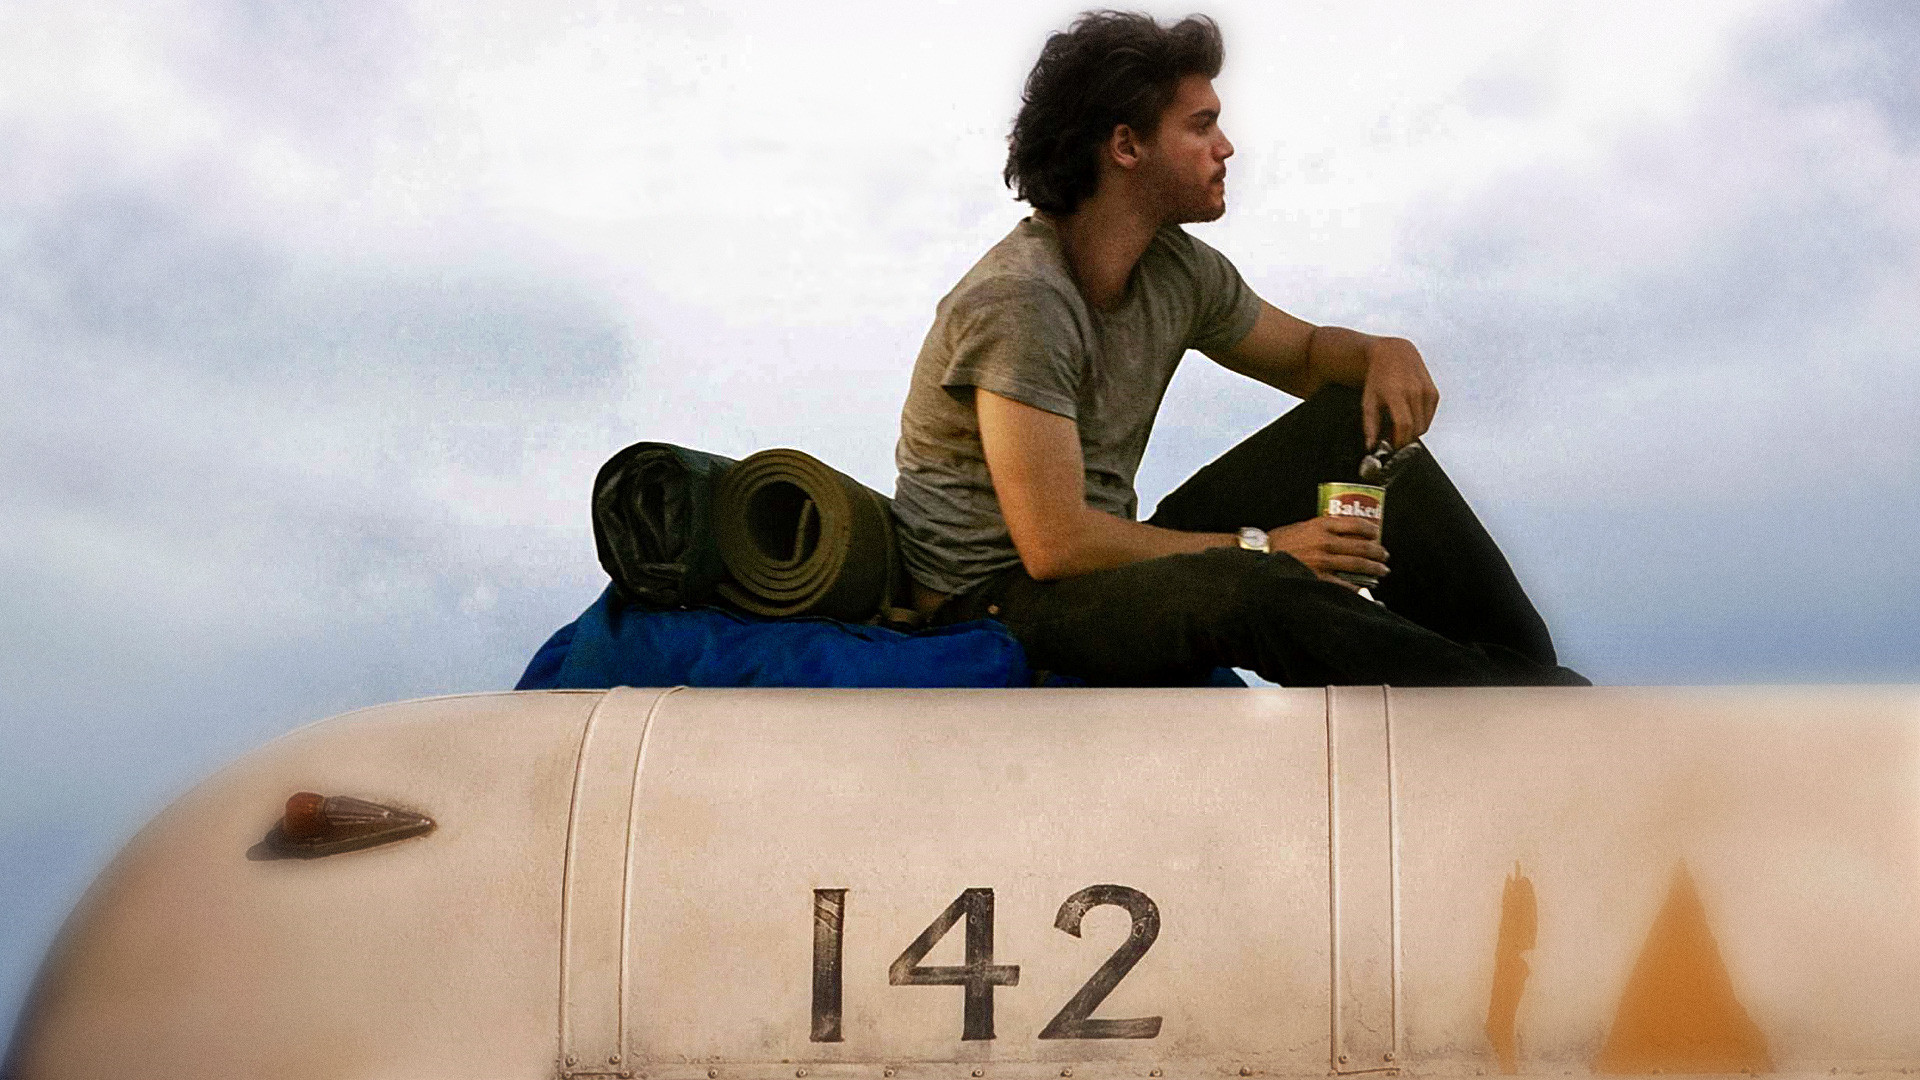 6 Valuable Life Lessons From Into the Wild